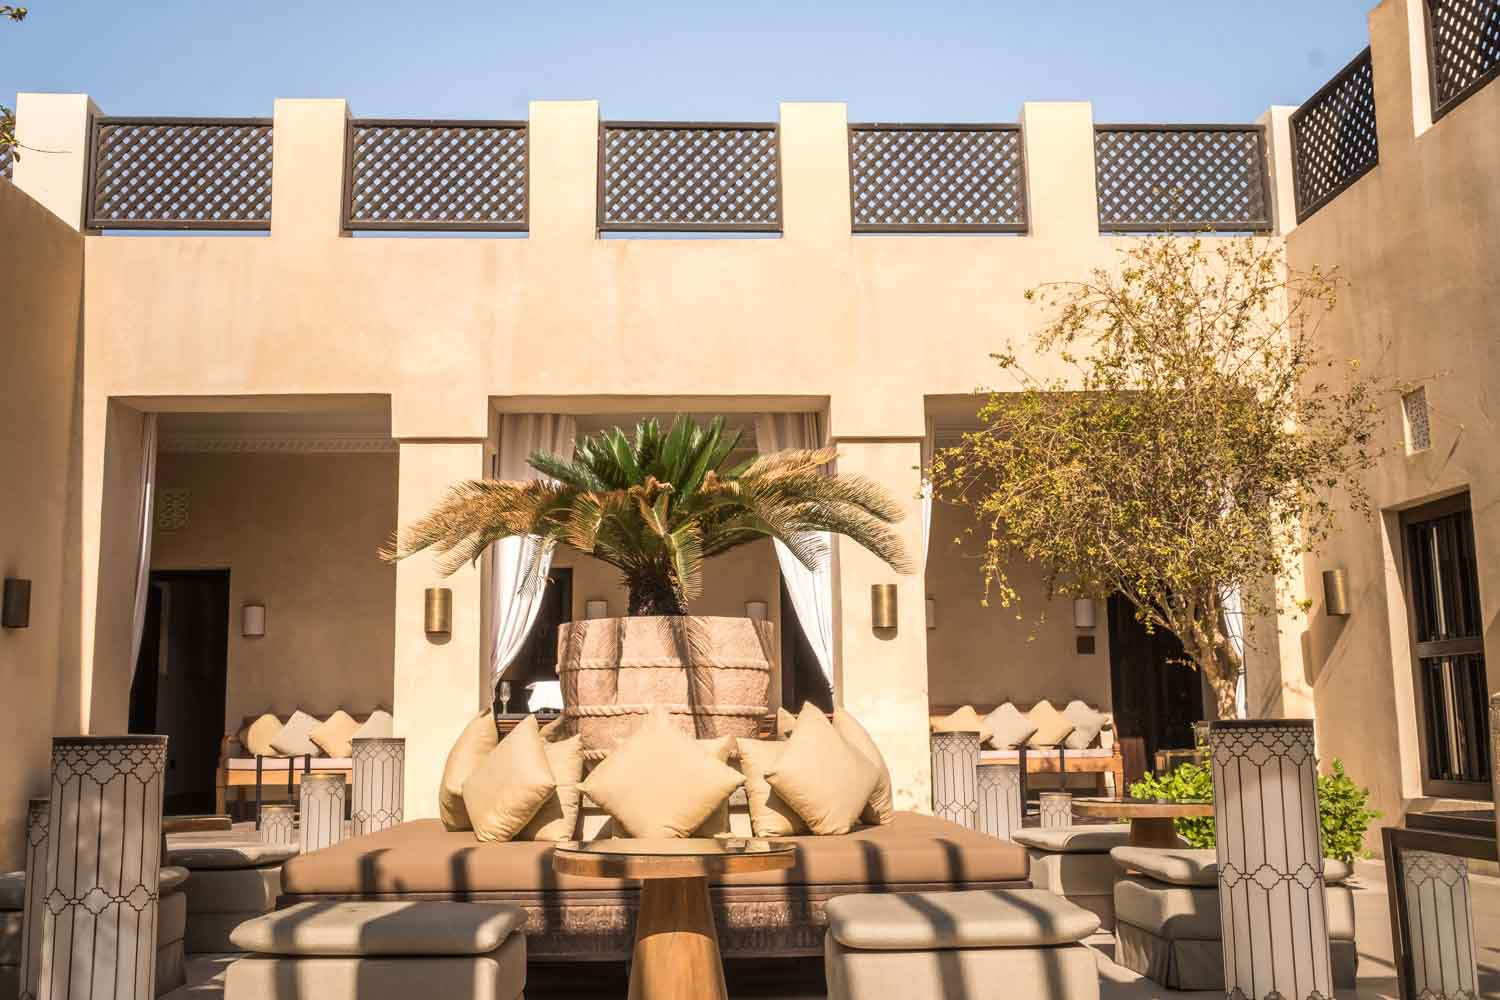 Best places to visit in Heart of Sharjah - The Chedi Al Bait hotel